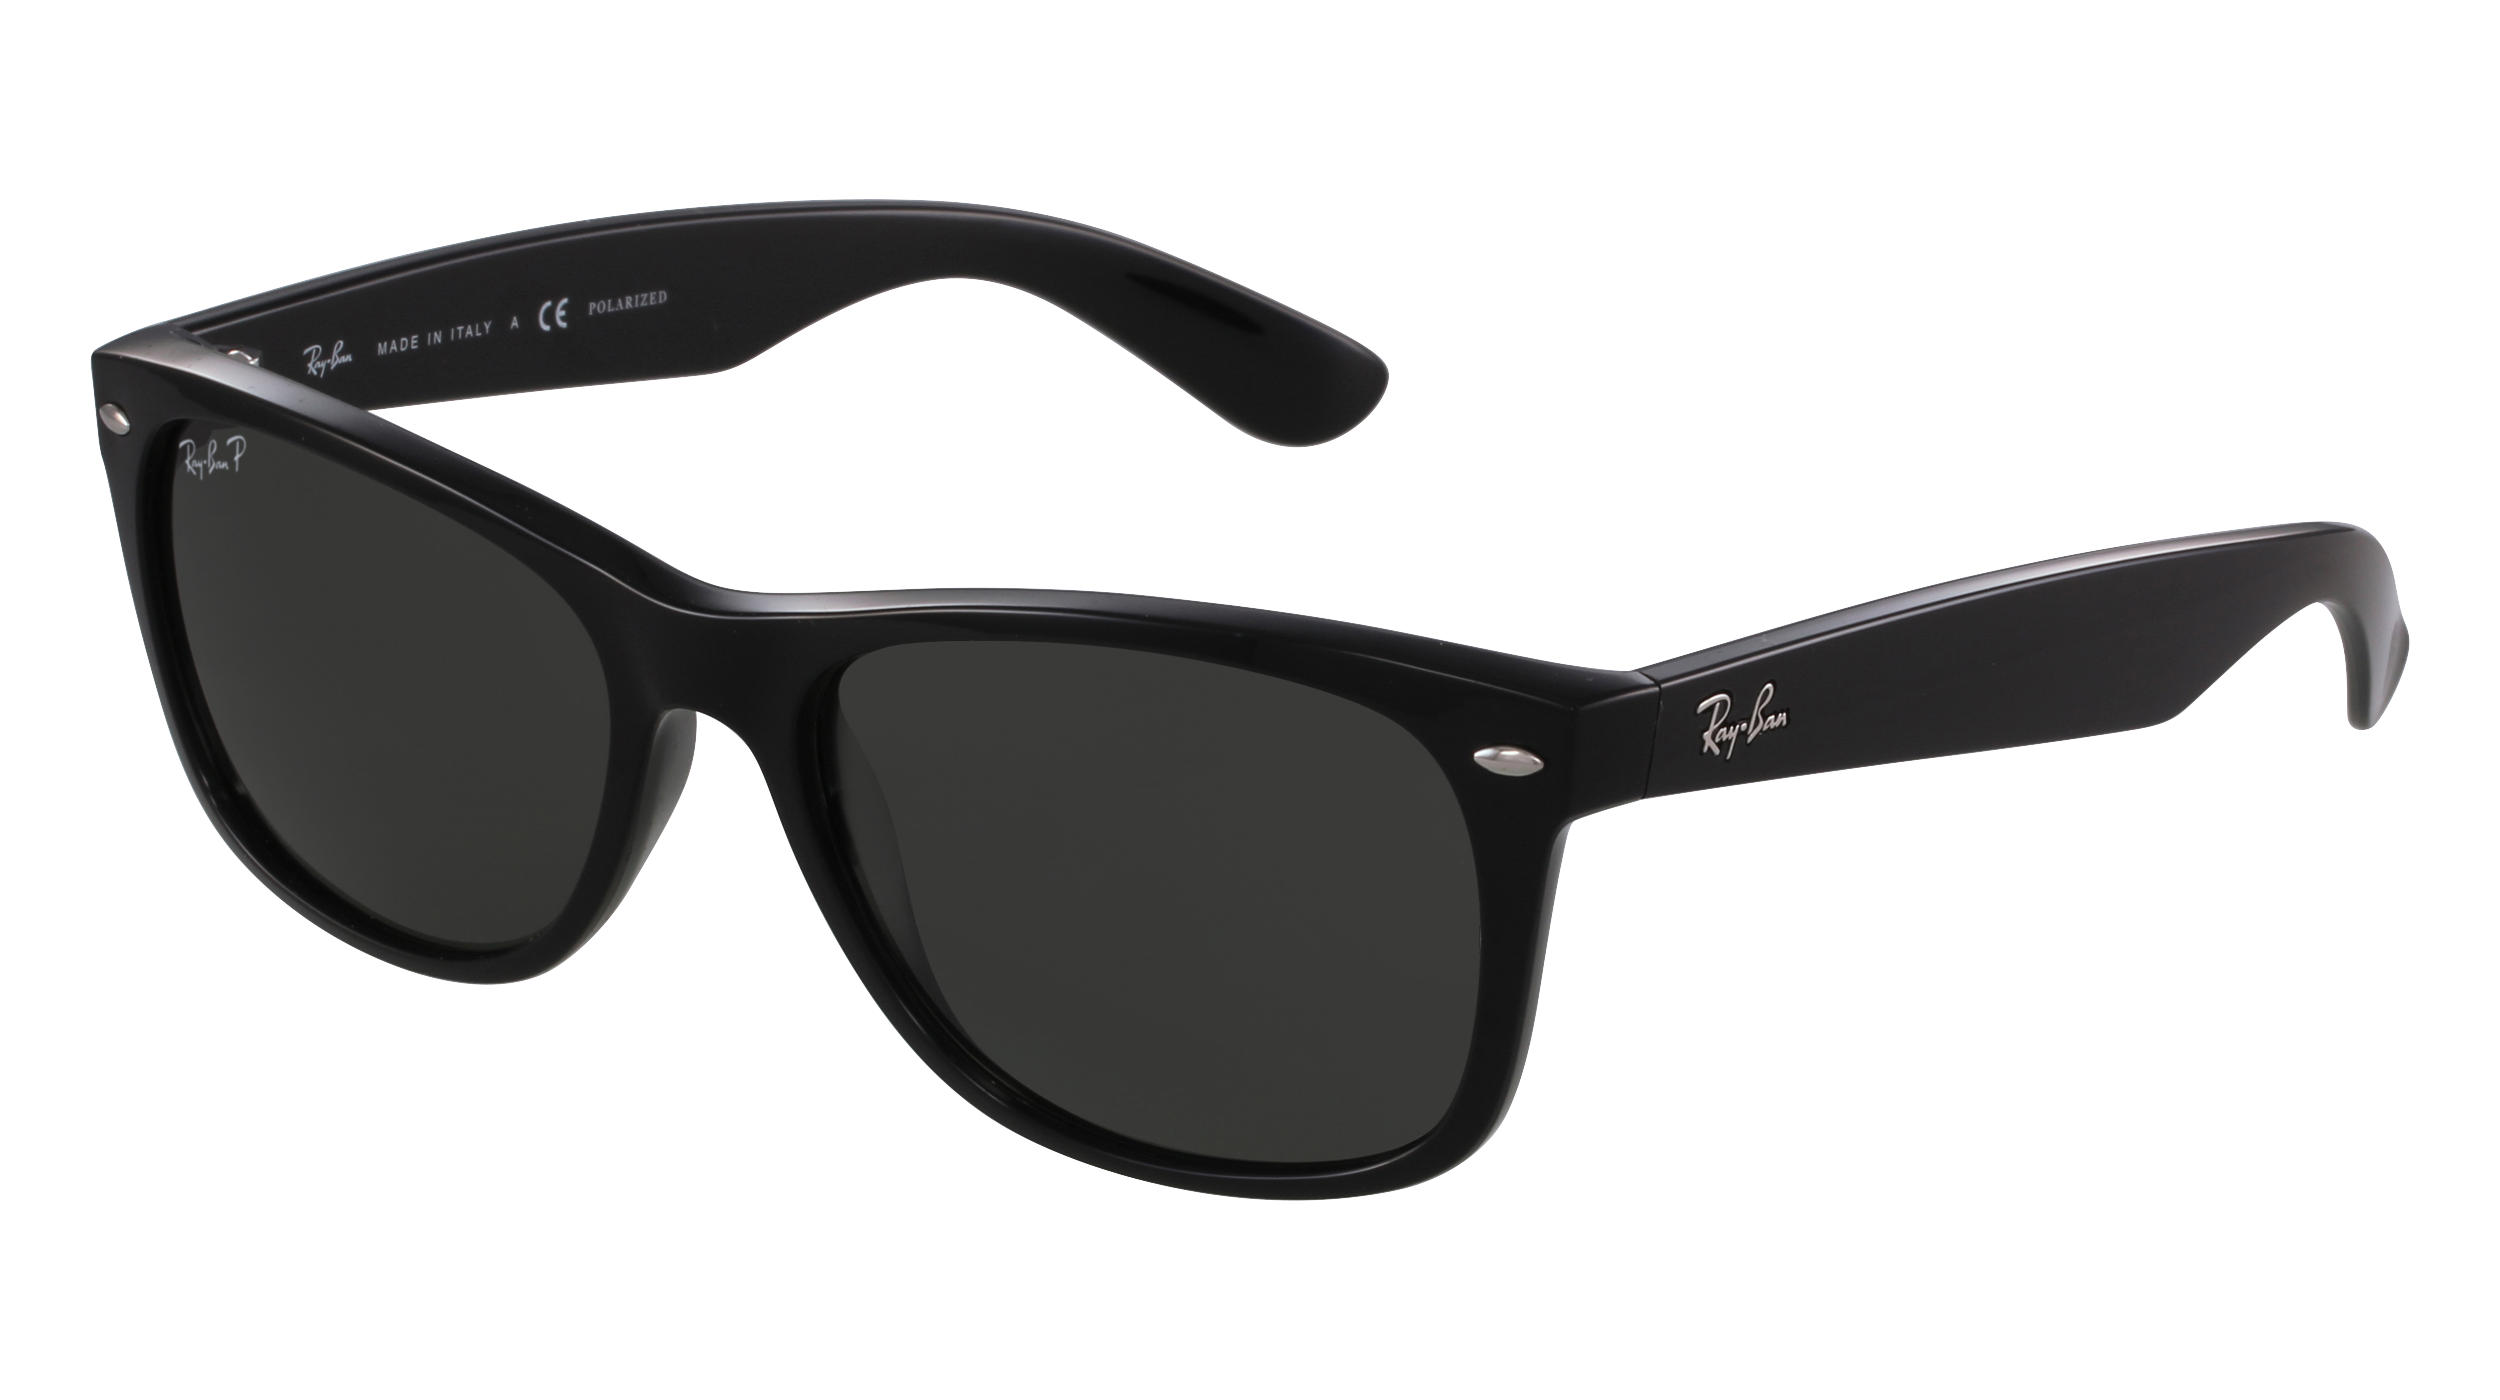 Ray-Ban RB2132-S-30158-58-18-145